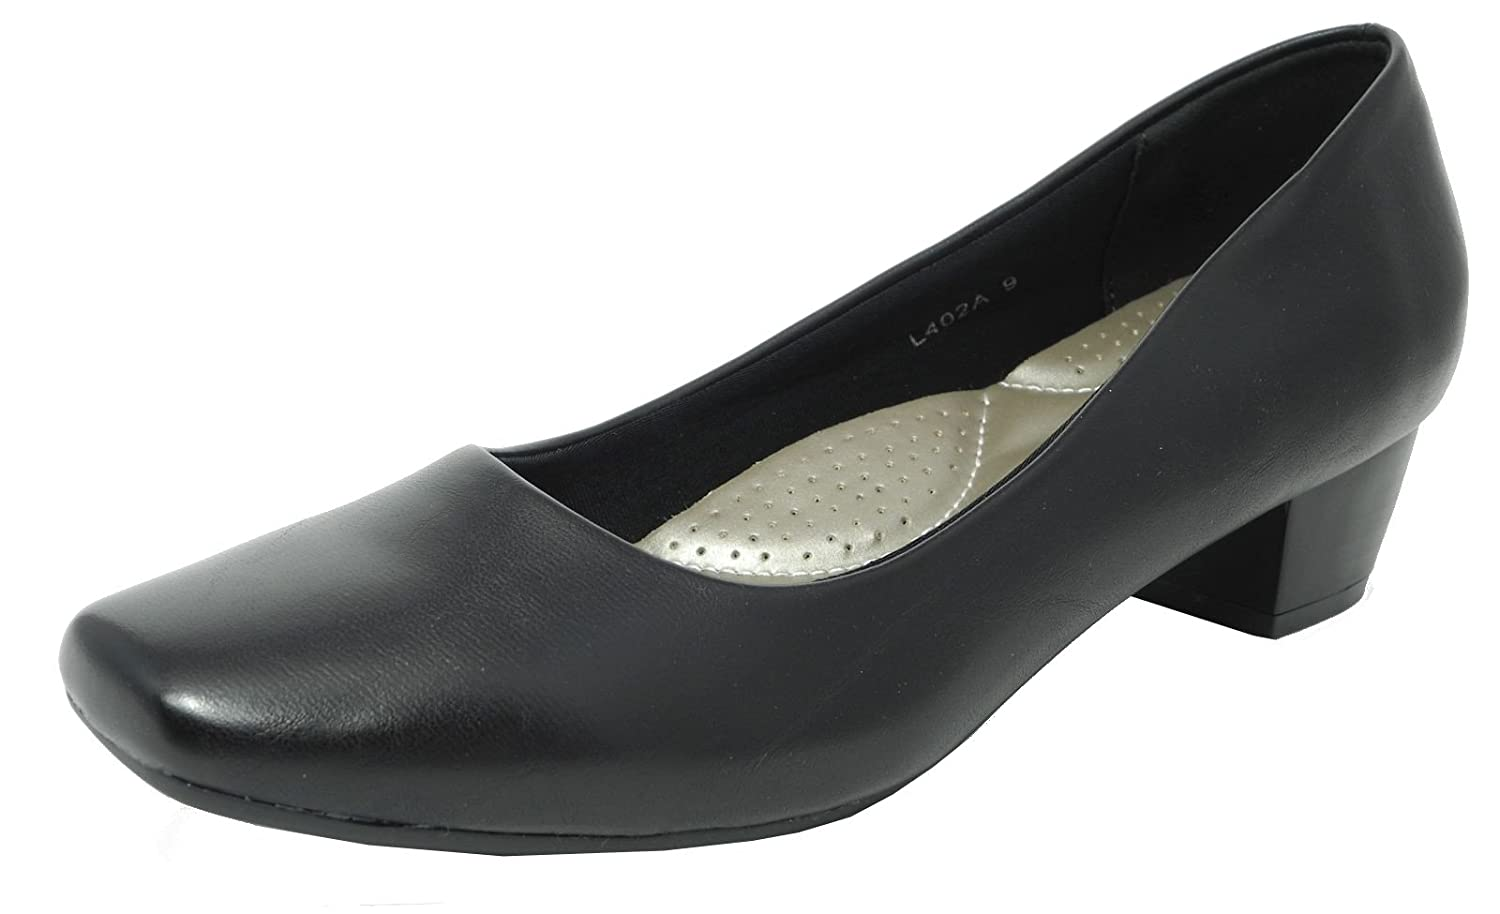 bb73e8fc83f Womens Ladies Leather Lined Comfortable Ultra Padded Insole Black Low Heel  Court Shoes Size 2 3 4 5 6 7 8 9